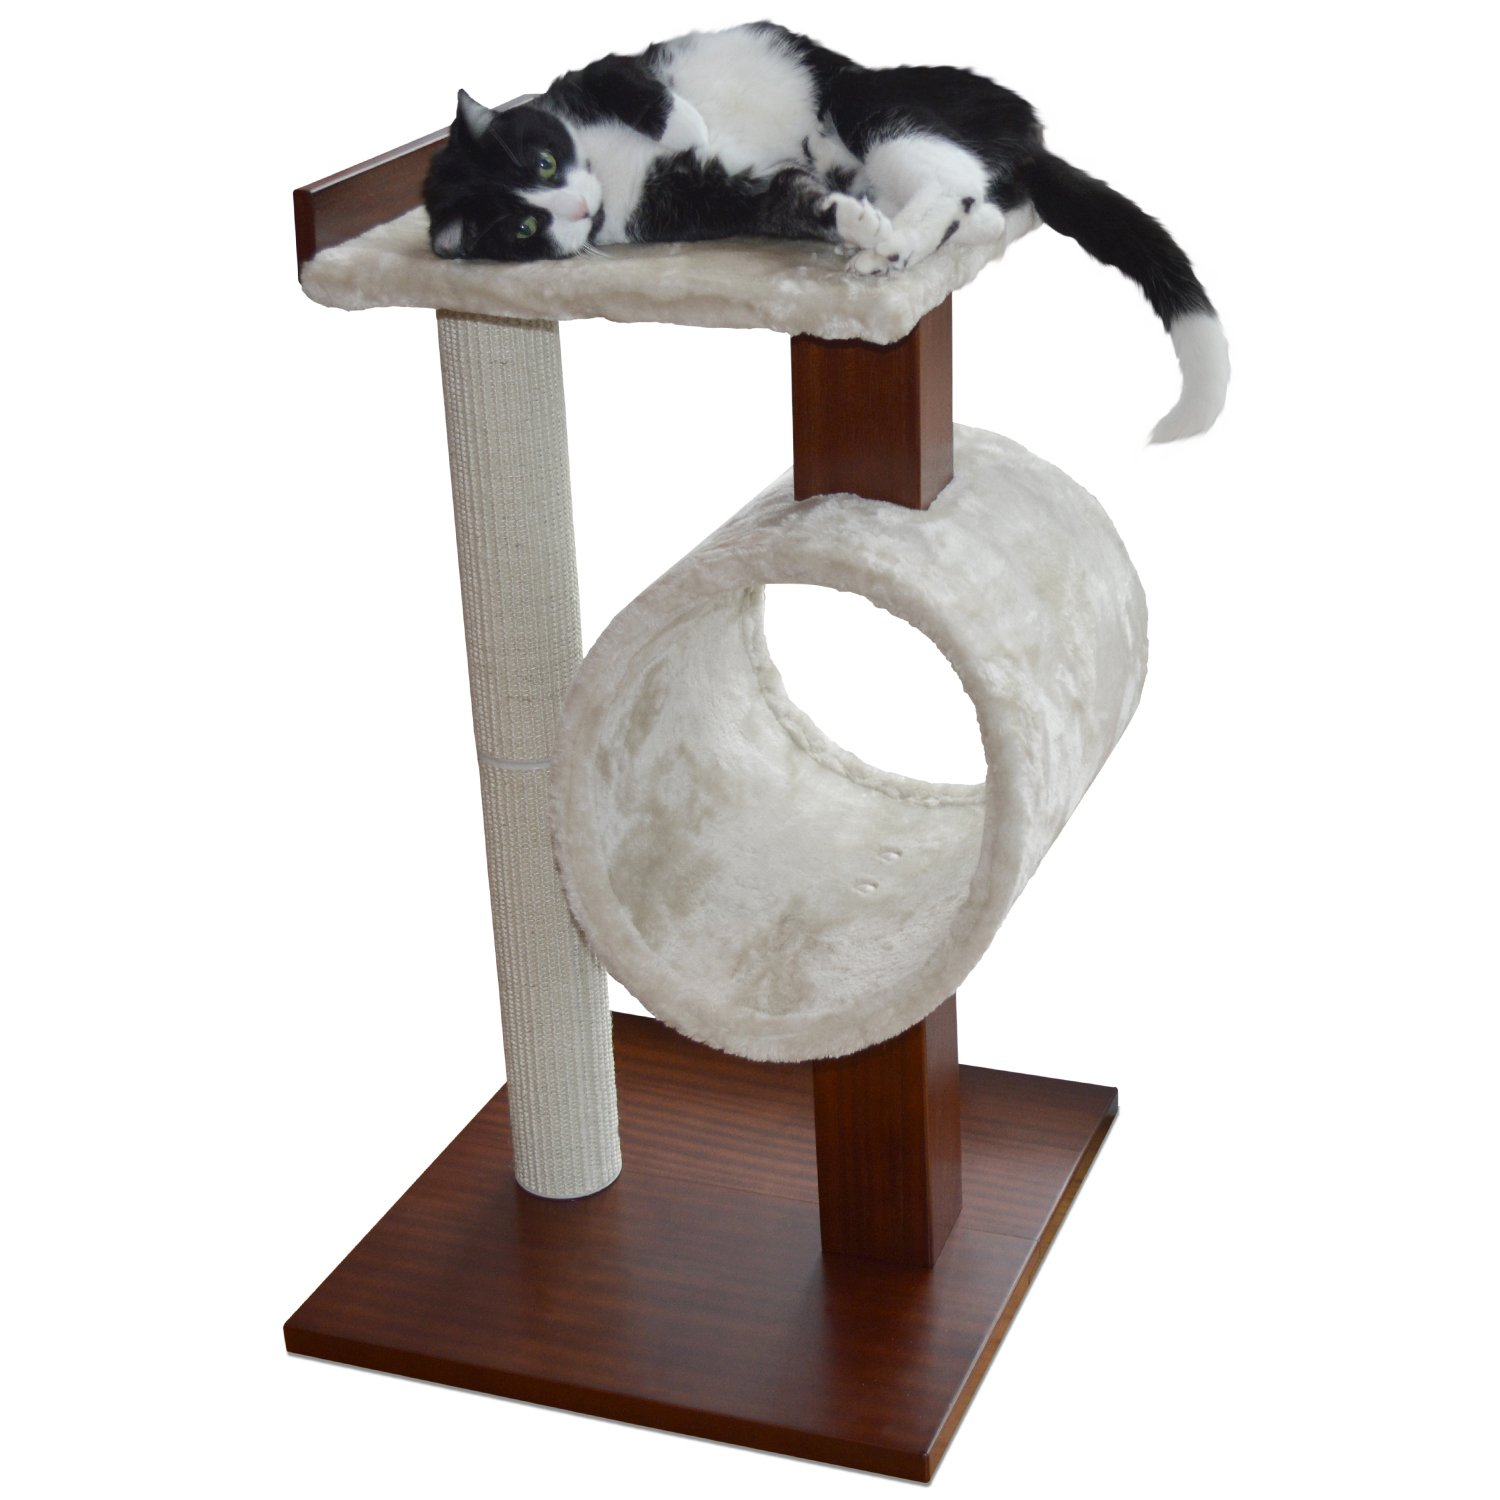 Amazon.com: Scratching Posts - Beds \u0026 Furniture: Pet Supplies